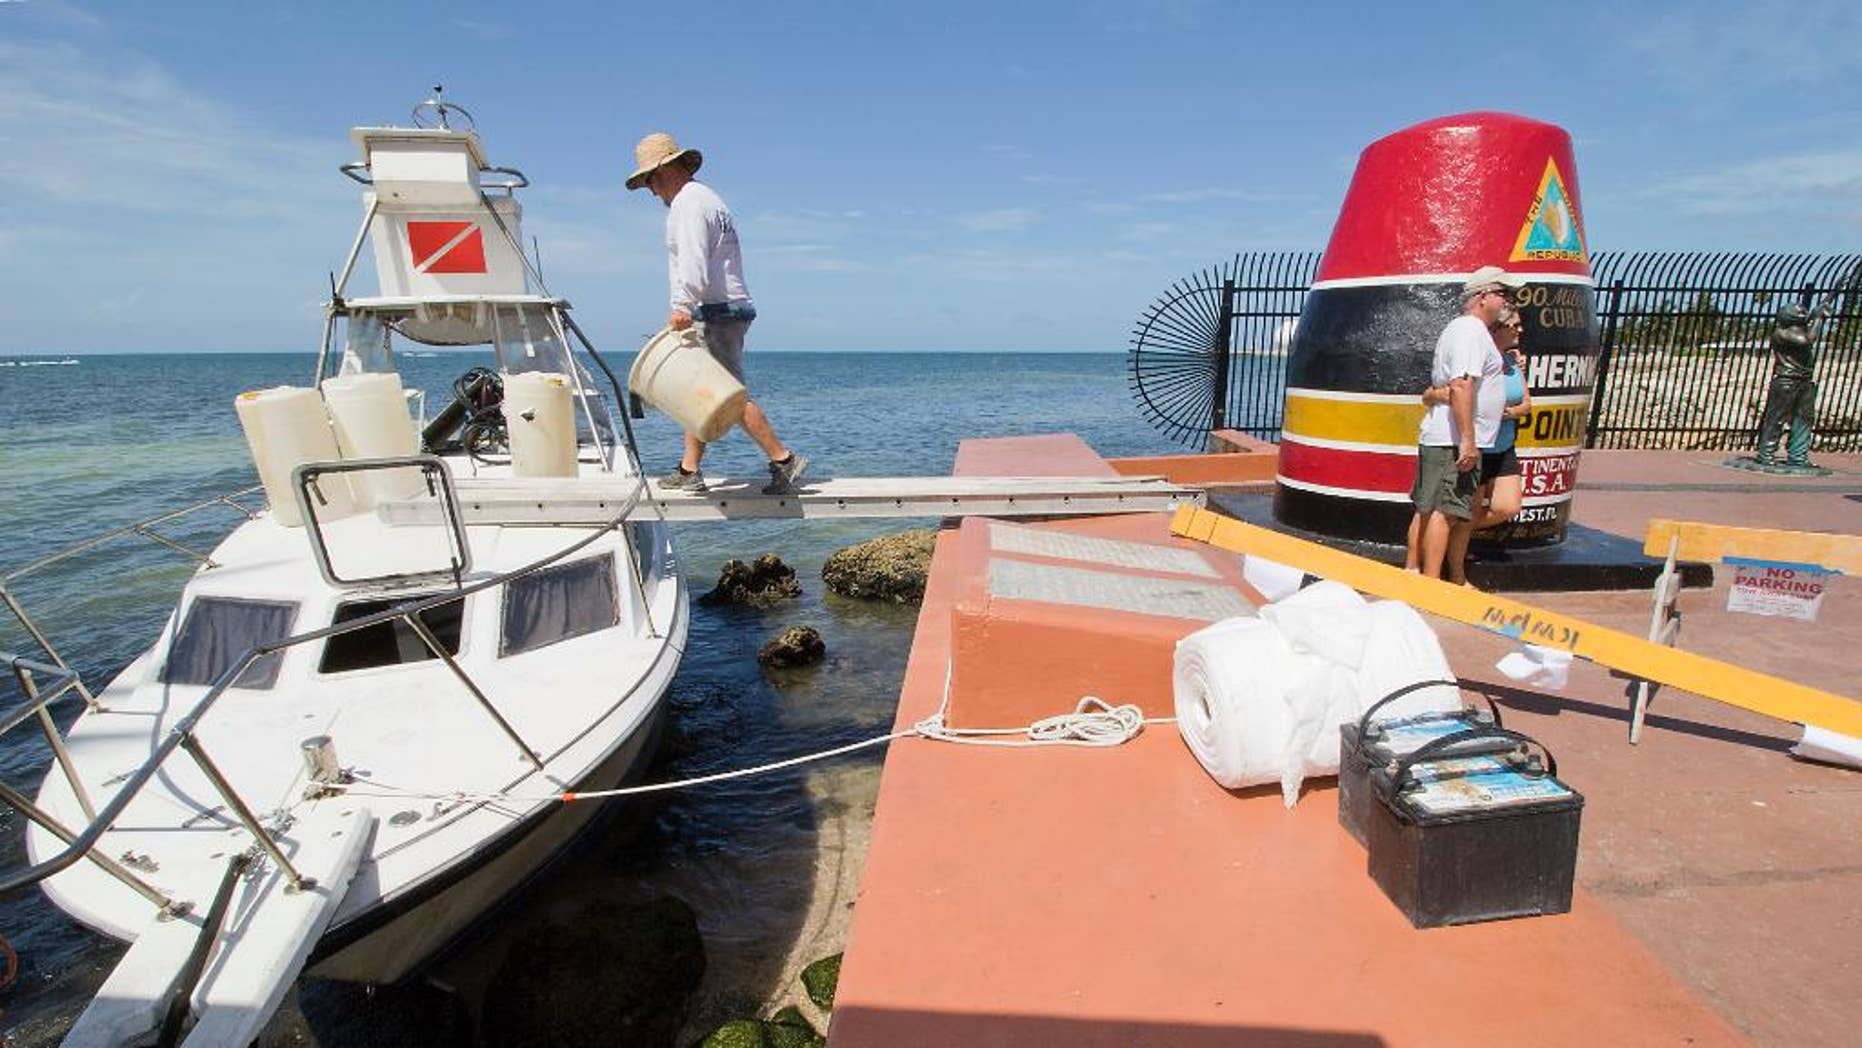 Environmental clean-up crews respond to a grounded dive boat that contained a group of Cuban migrants on Wednesday, July 13, 2016, at the Southermost Point marker in Key West, Fla. The group of three men and three women were taken into custody on Duval Street shortly thereafter and will be processed at the Krome Detention Center in Miami.  (Rob O'Neal(/The Miami Herald via AP)(/The Key West Citizen via AP)  MIAMI OUT; MANDATORY CREDIT